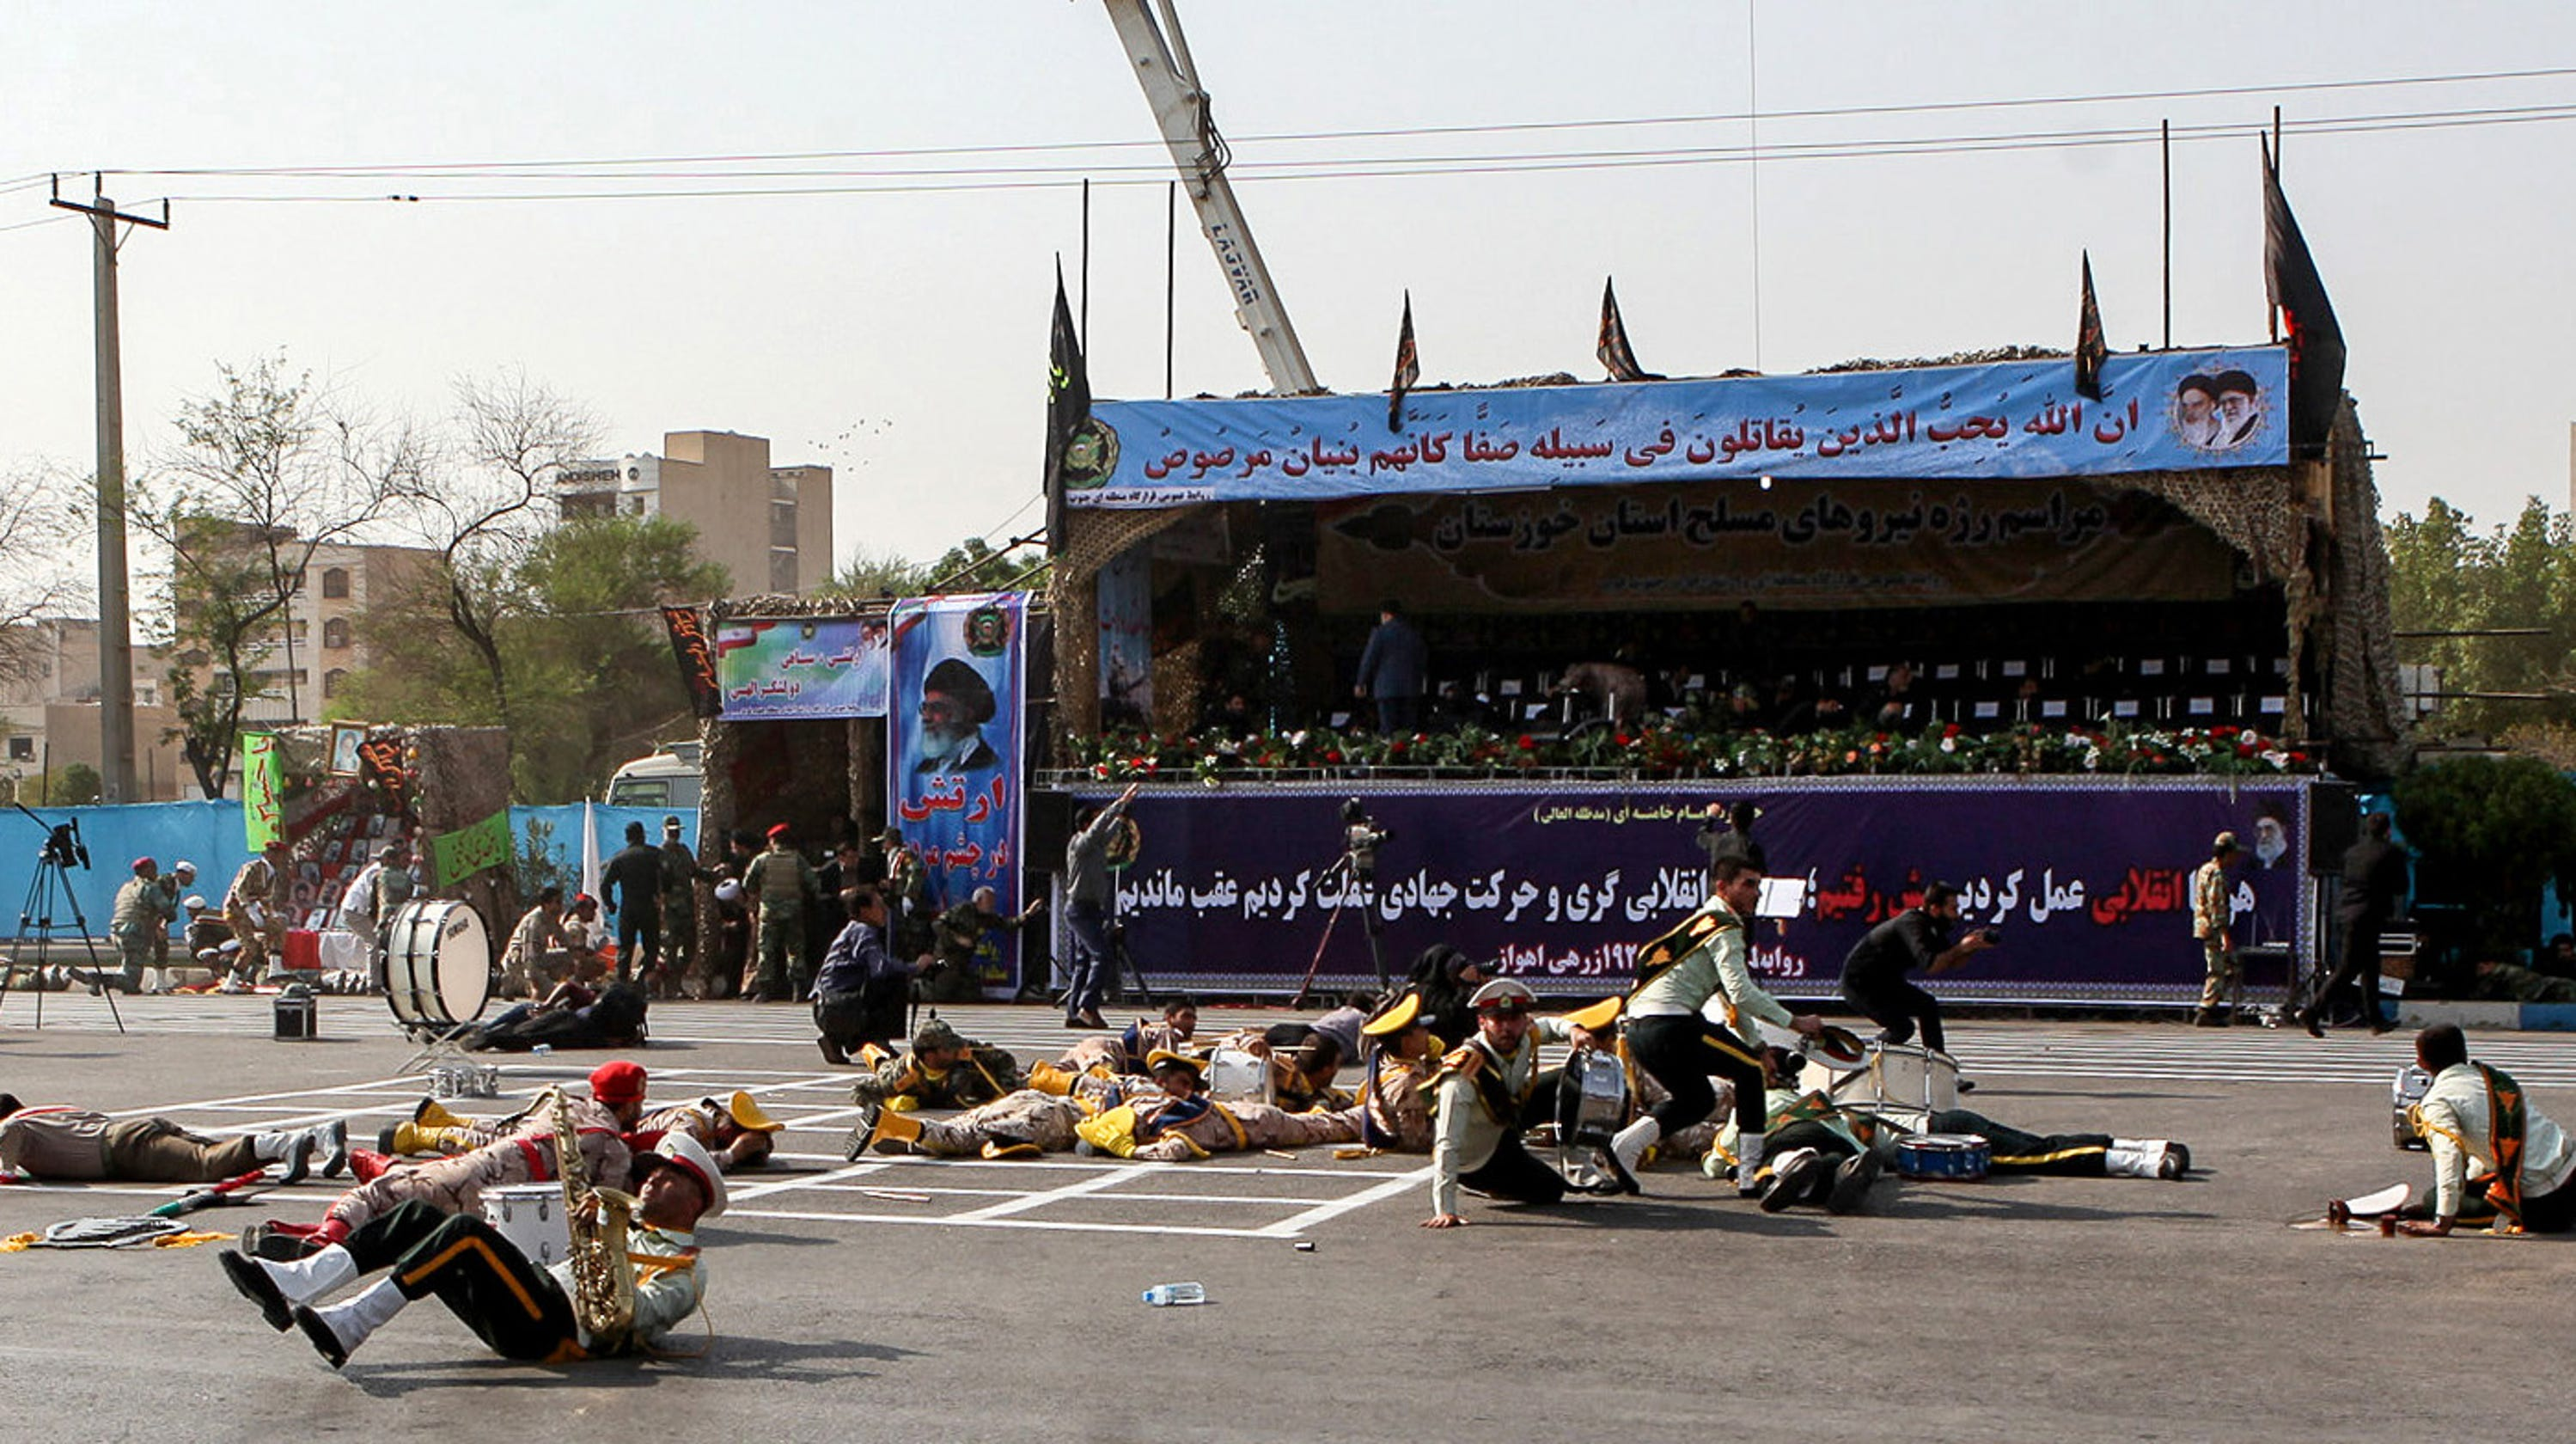 Iran parade: At least 25 dead as gunmen spray crowd in ...